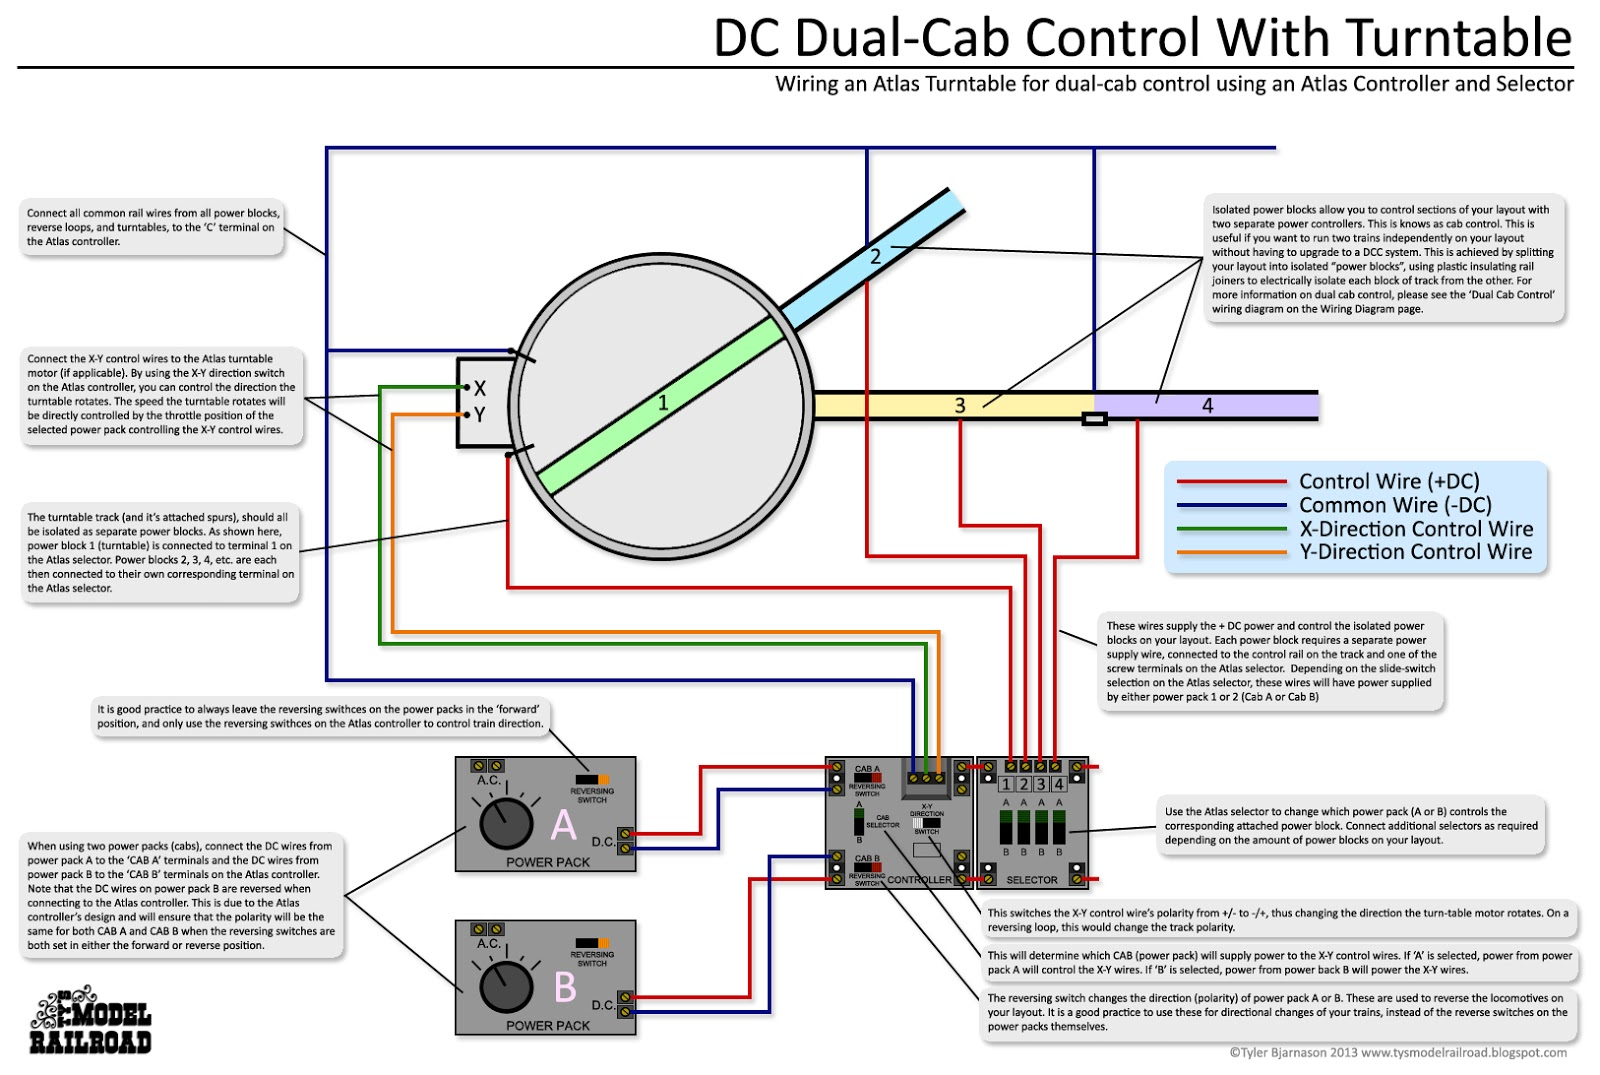 turntable cartridge wiring diagram car stereo toyota 24 images dual cab control turn table ty s model railroad diagrams at cita